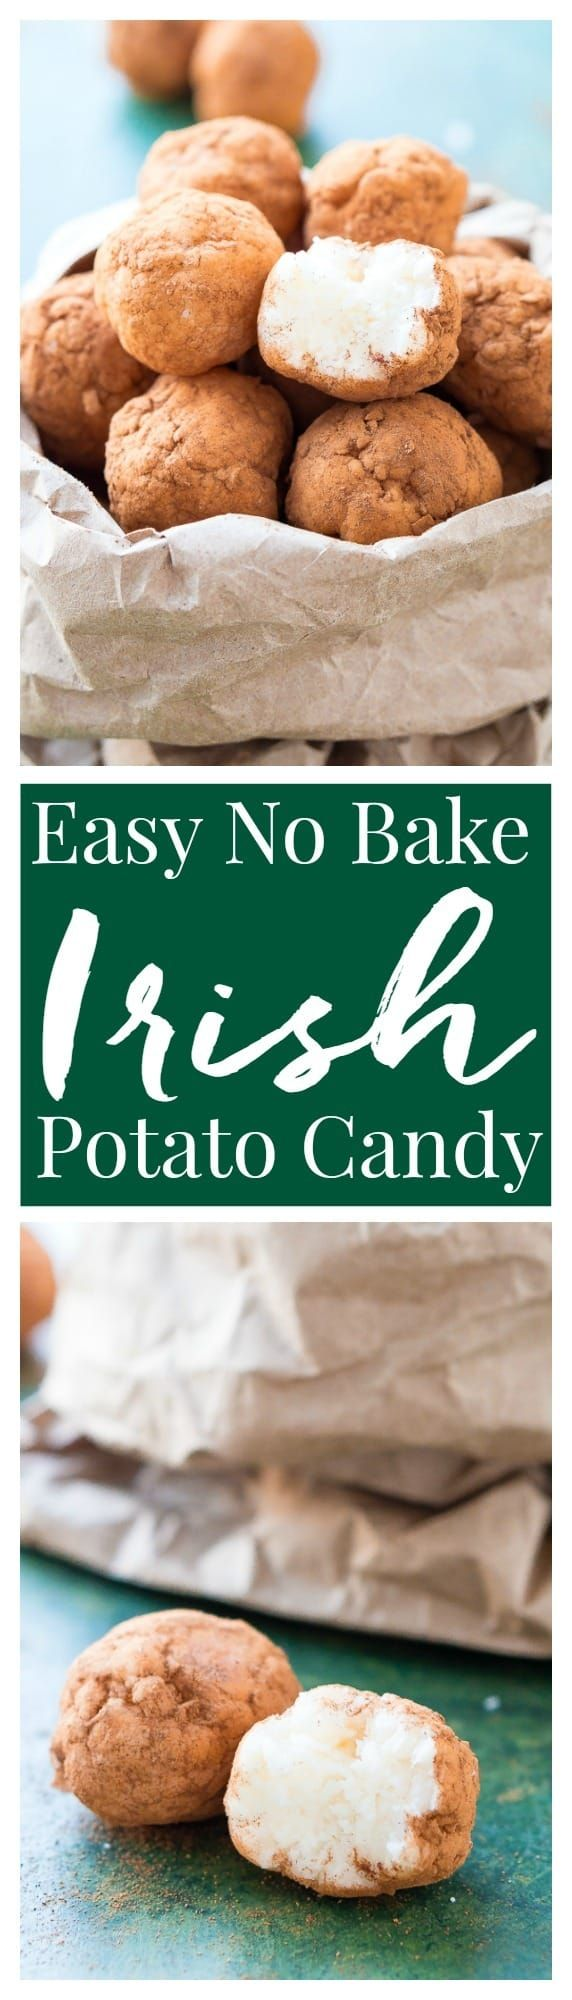 This+Irish+Potato+Candy+is+perfect+for+celebrating+St.+Patrick's+Day+with!+Made+from+coconut,+cream+cheese,+sugar,+and+cinnamon+and+look+like+potatoes!+via+@sugarandsoulco